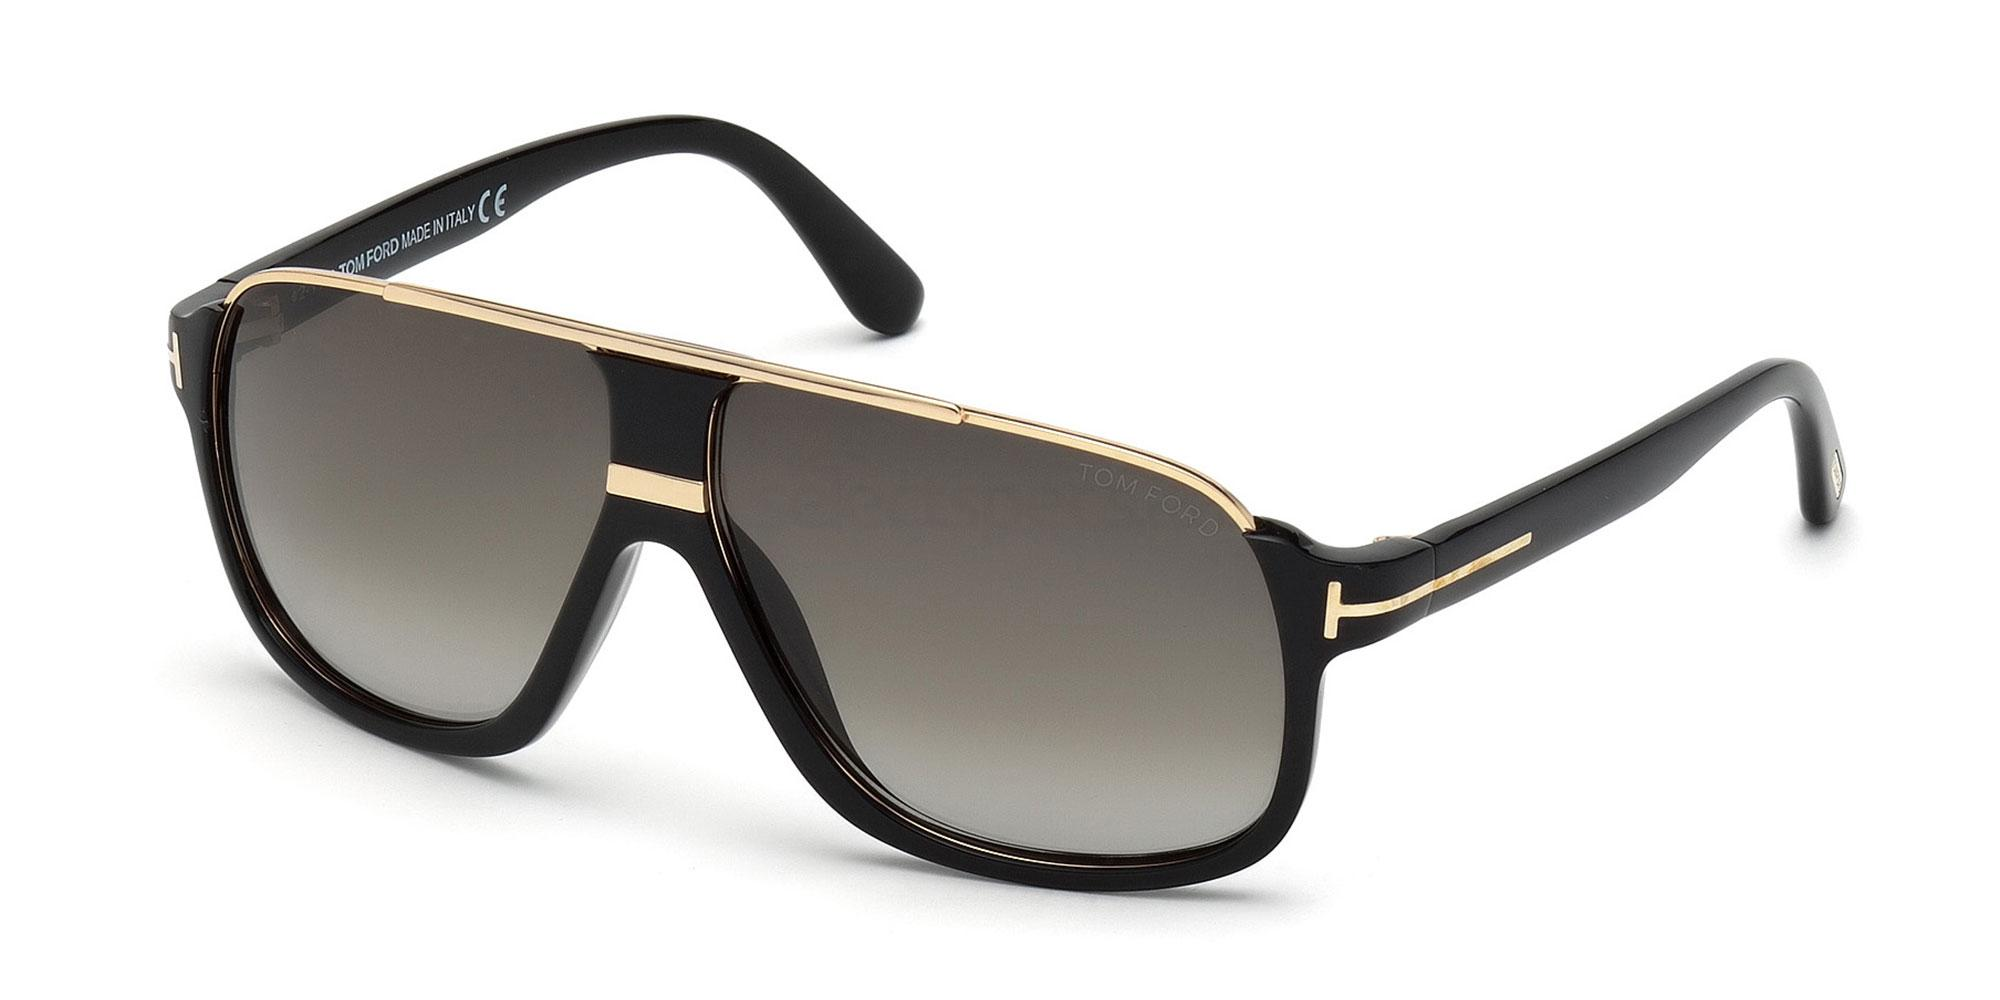 01P FT0335 Sunglasses, Tom Ford